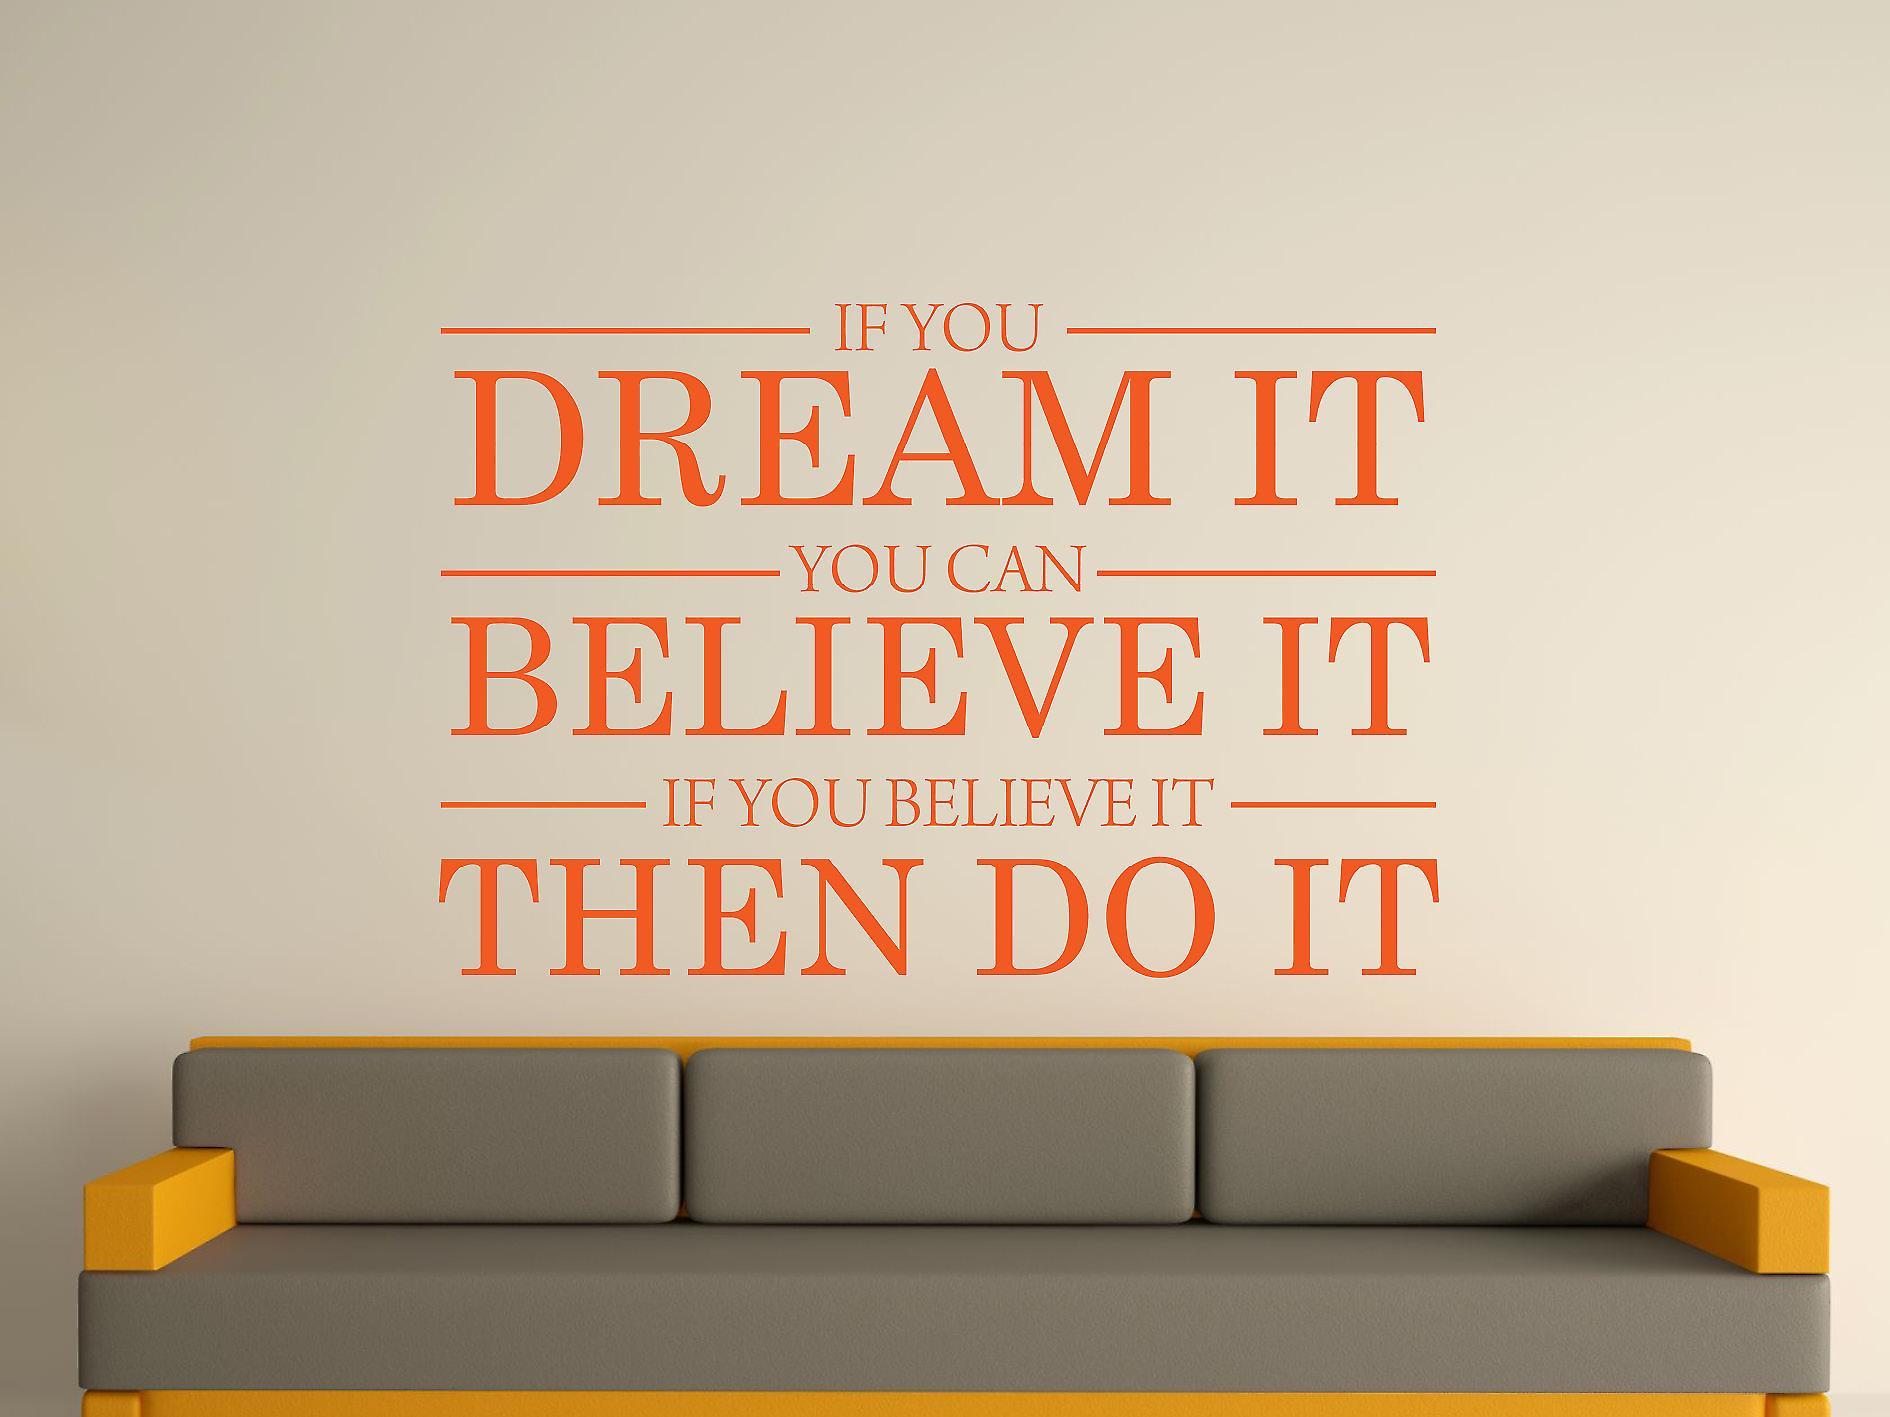 Dream It Believe It Do It Wall Art Sticker - Orange